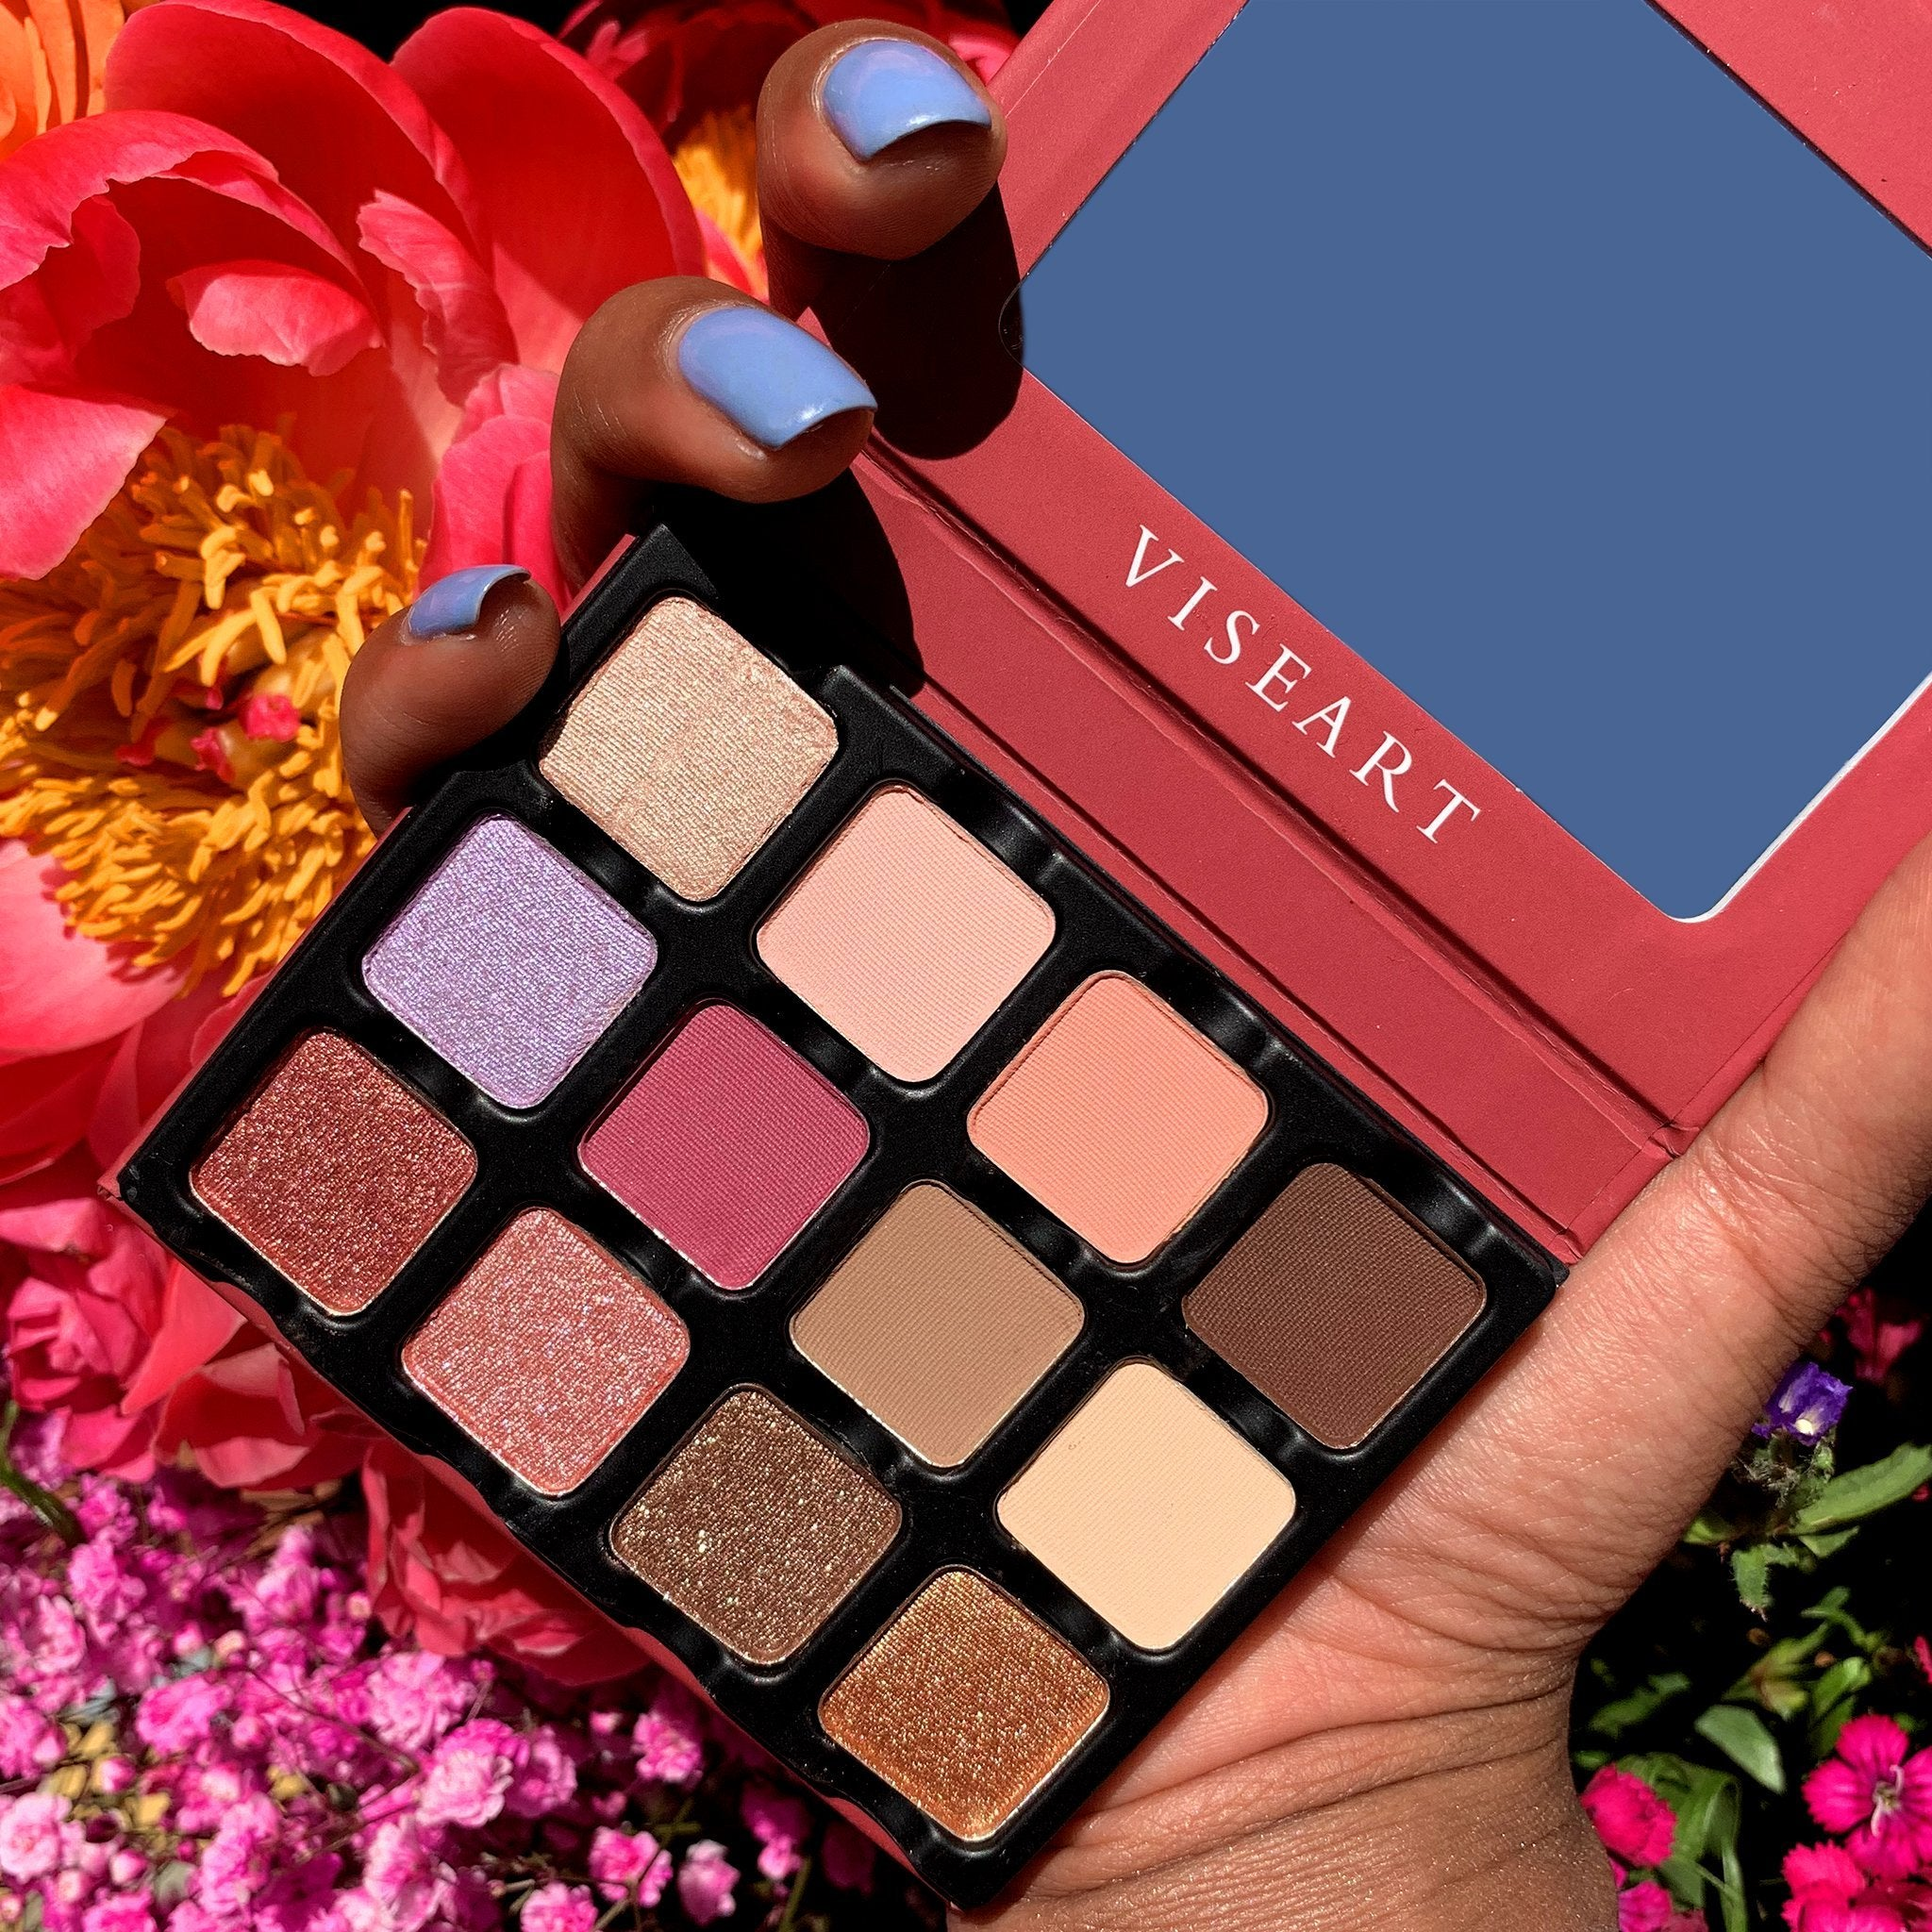 Rosé Edit Eyeshadow Palette